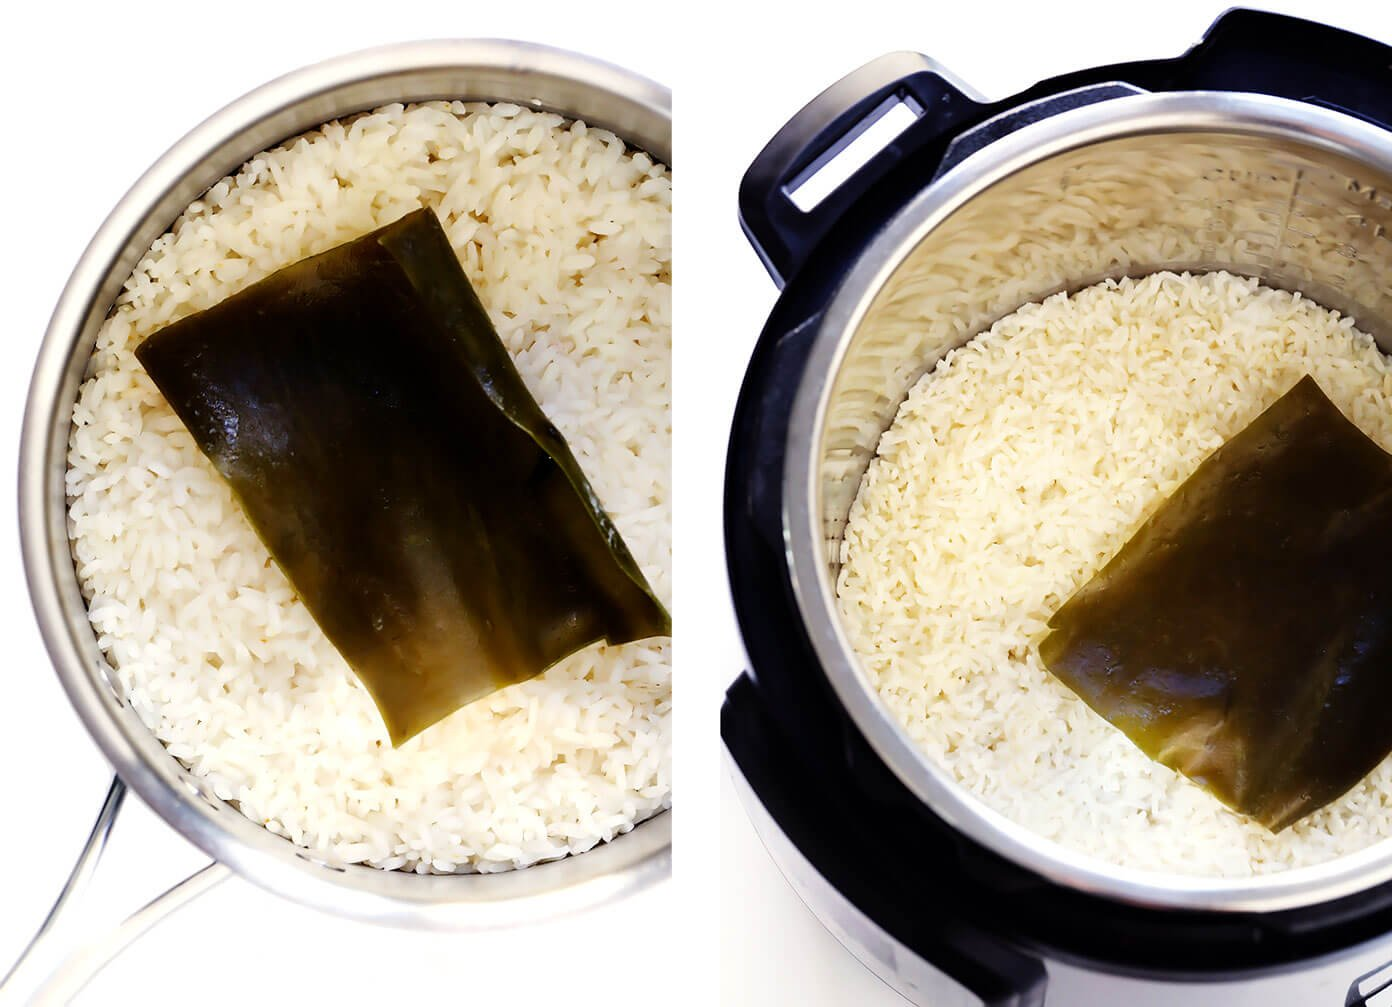 Sushi Rice with Kombu in Saucepan or Instant Pot